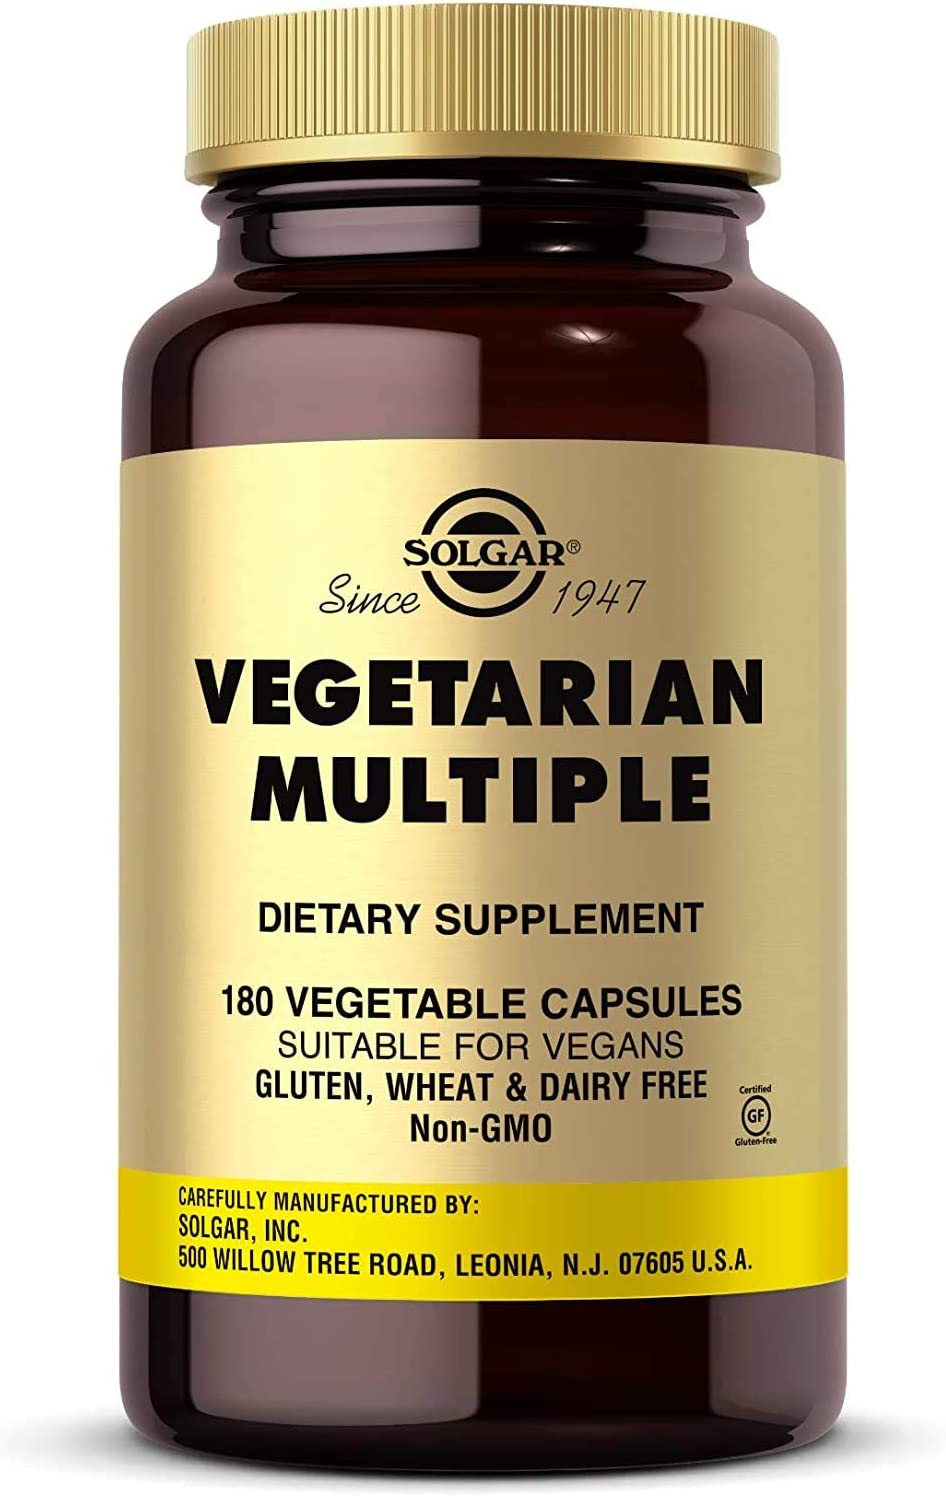 Solgar Vegetarian Multiple, 180 Vegetable Capsules - Vitamins A, C, D, E & More - Contains Irons - Plus Zinc for Healthy Immune System Support - Vegan, Gluten Free, Dairy Free - 60 Servings